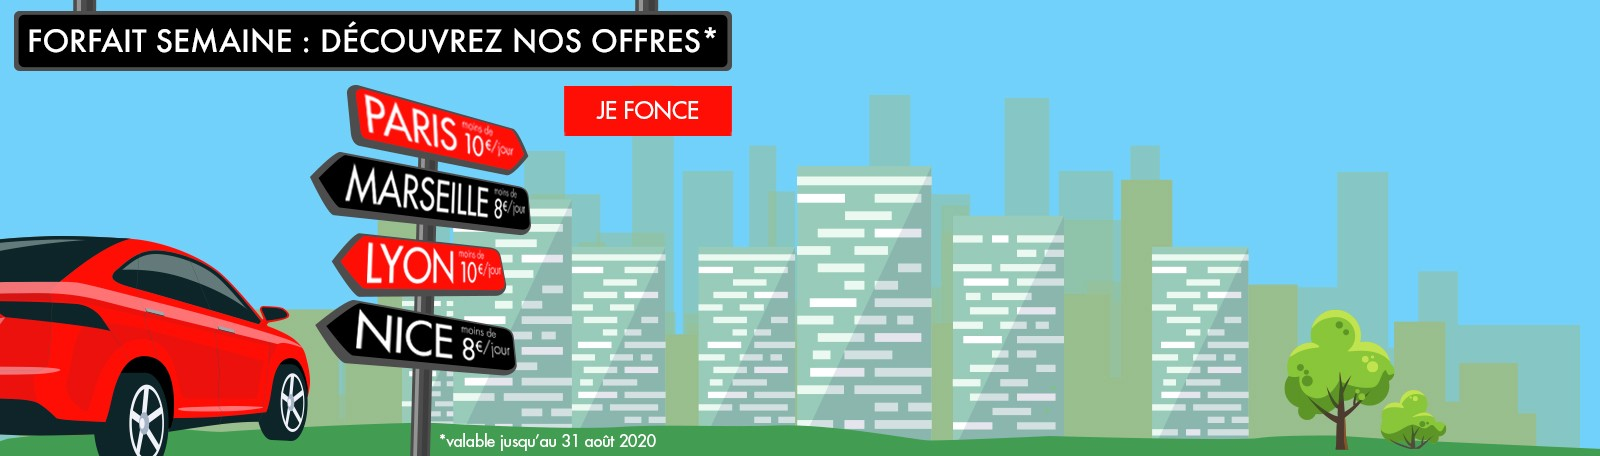 offres speciale semaine